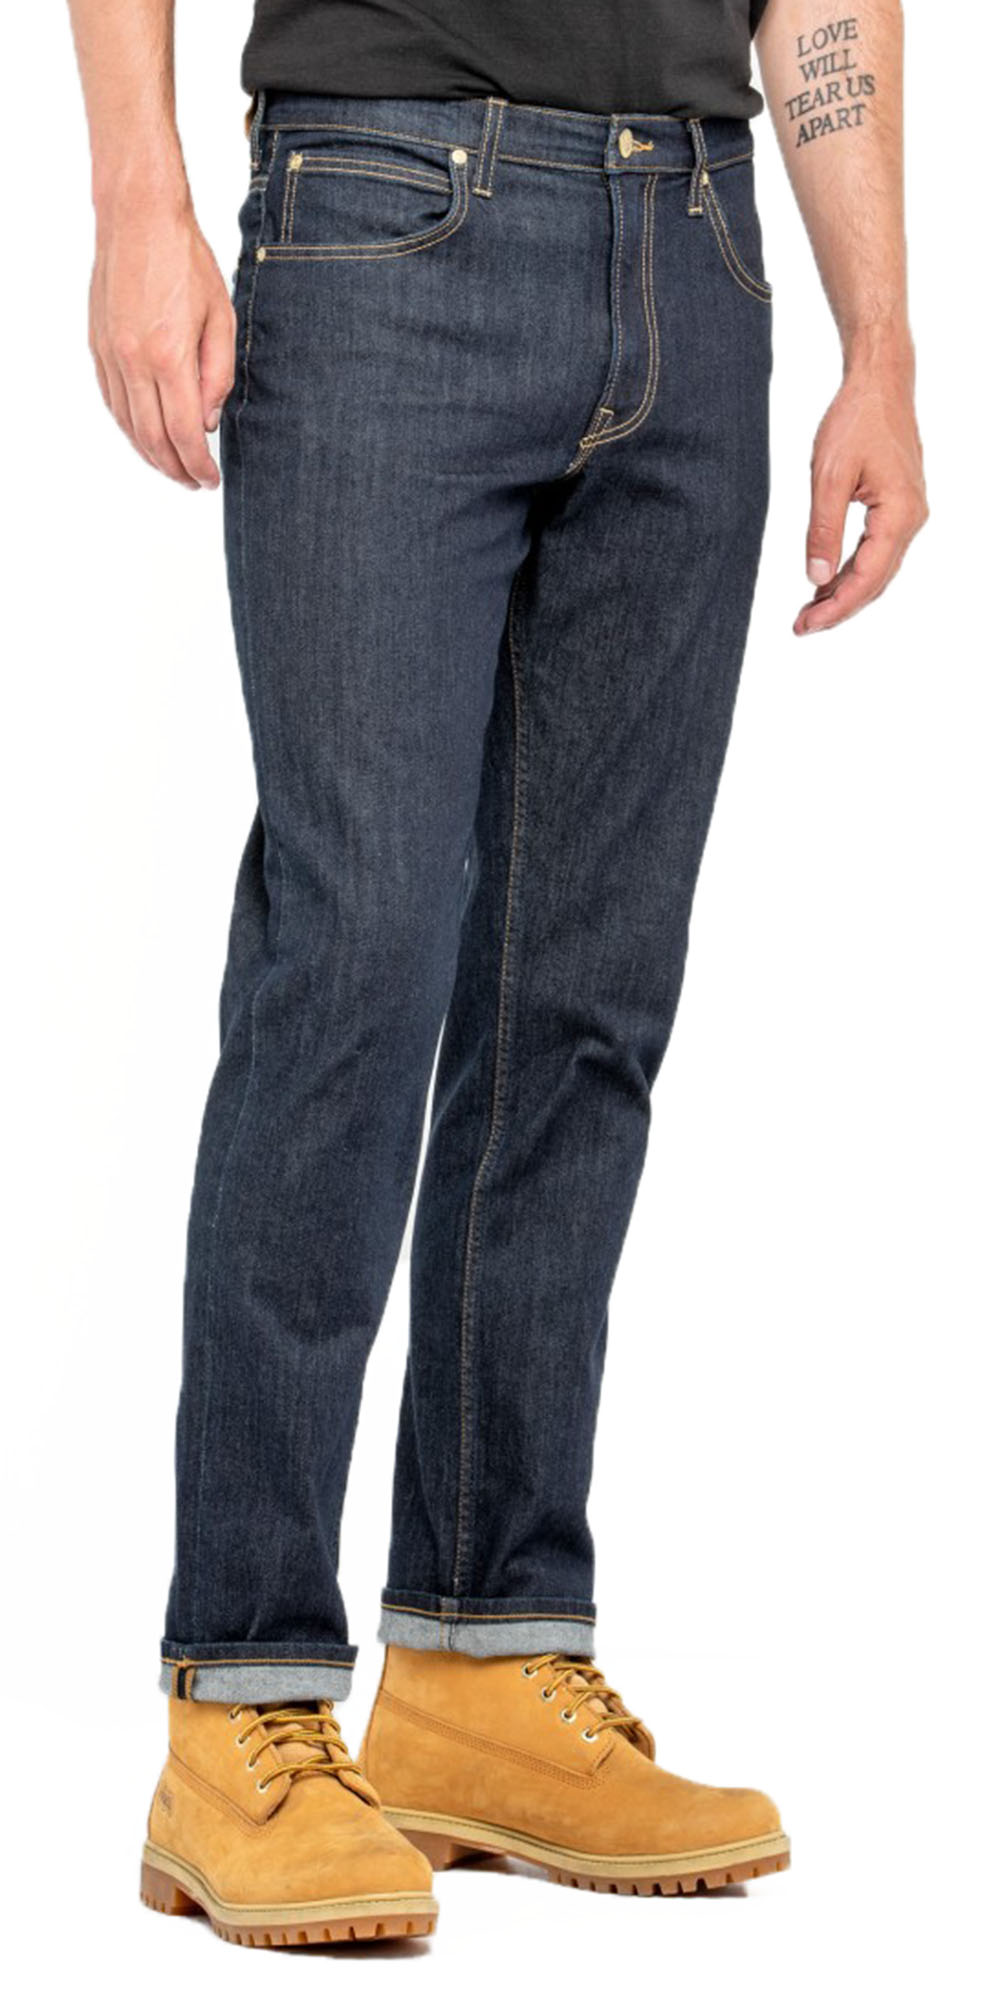 2de76718 Click on the Image to Enlarge. More Details. Lee Brooklyn men's stretch  denim ...